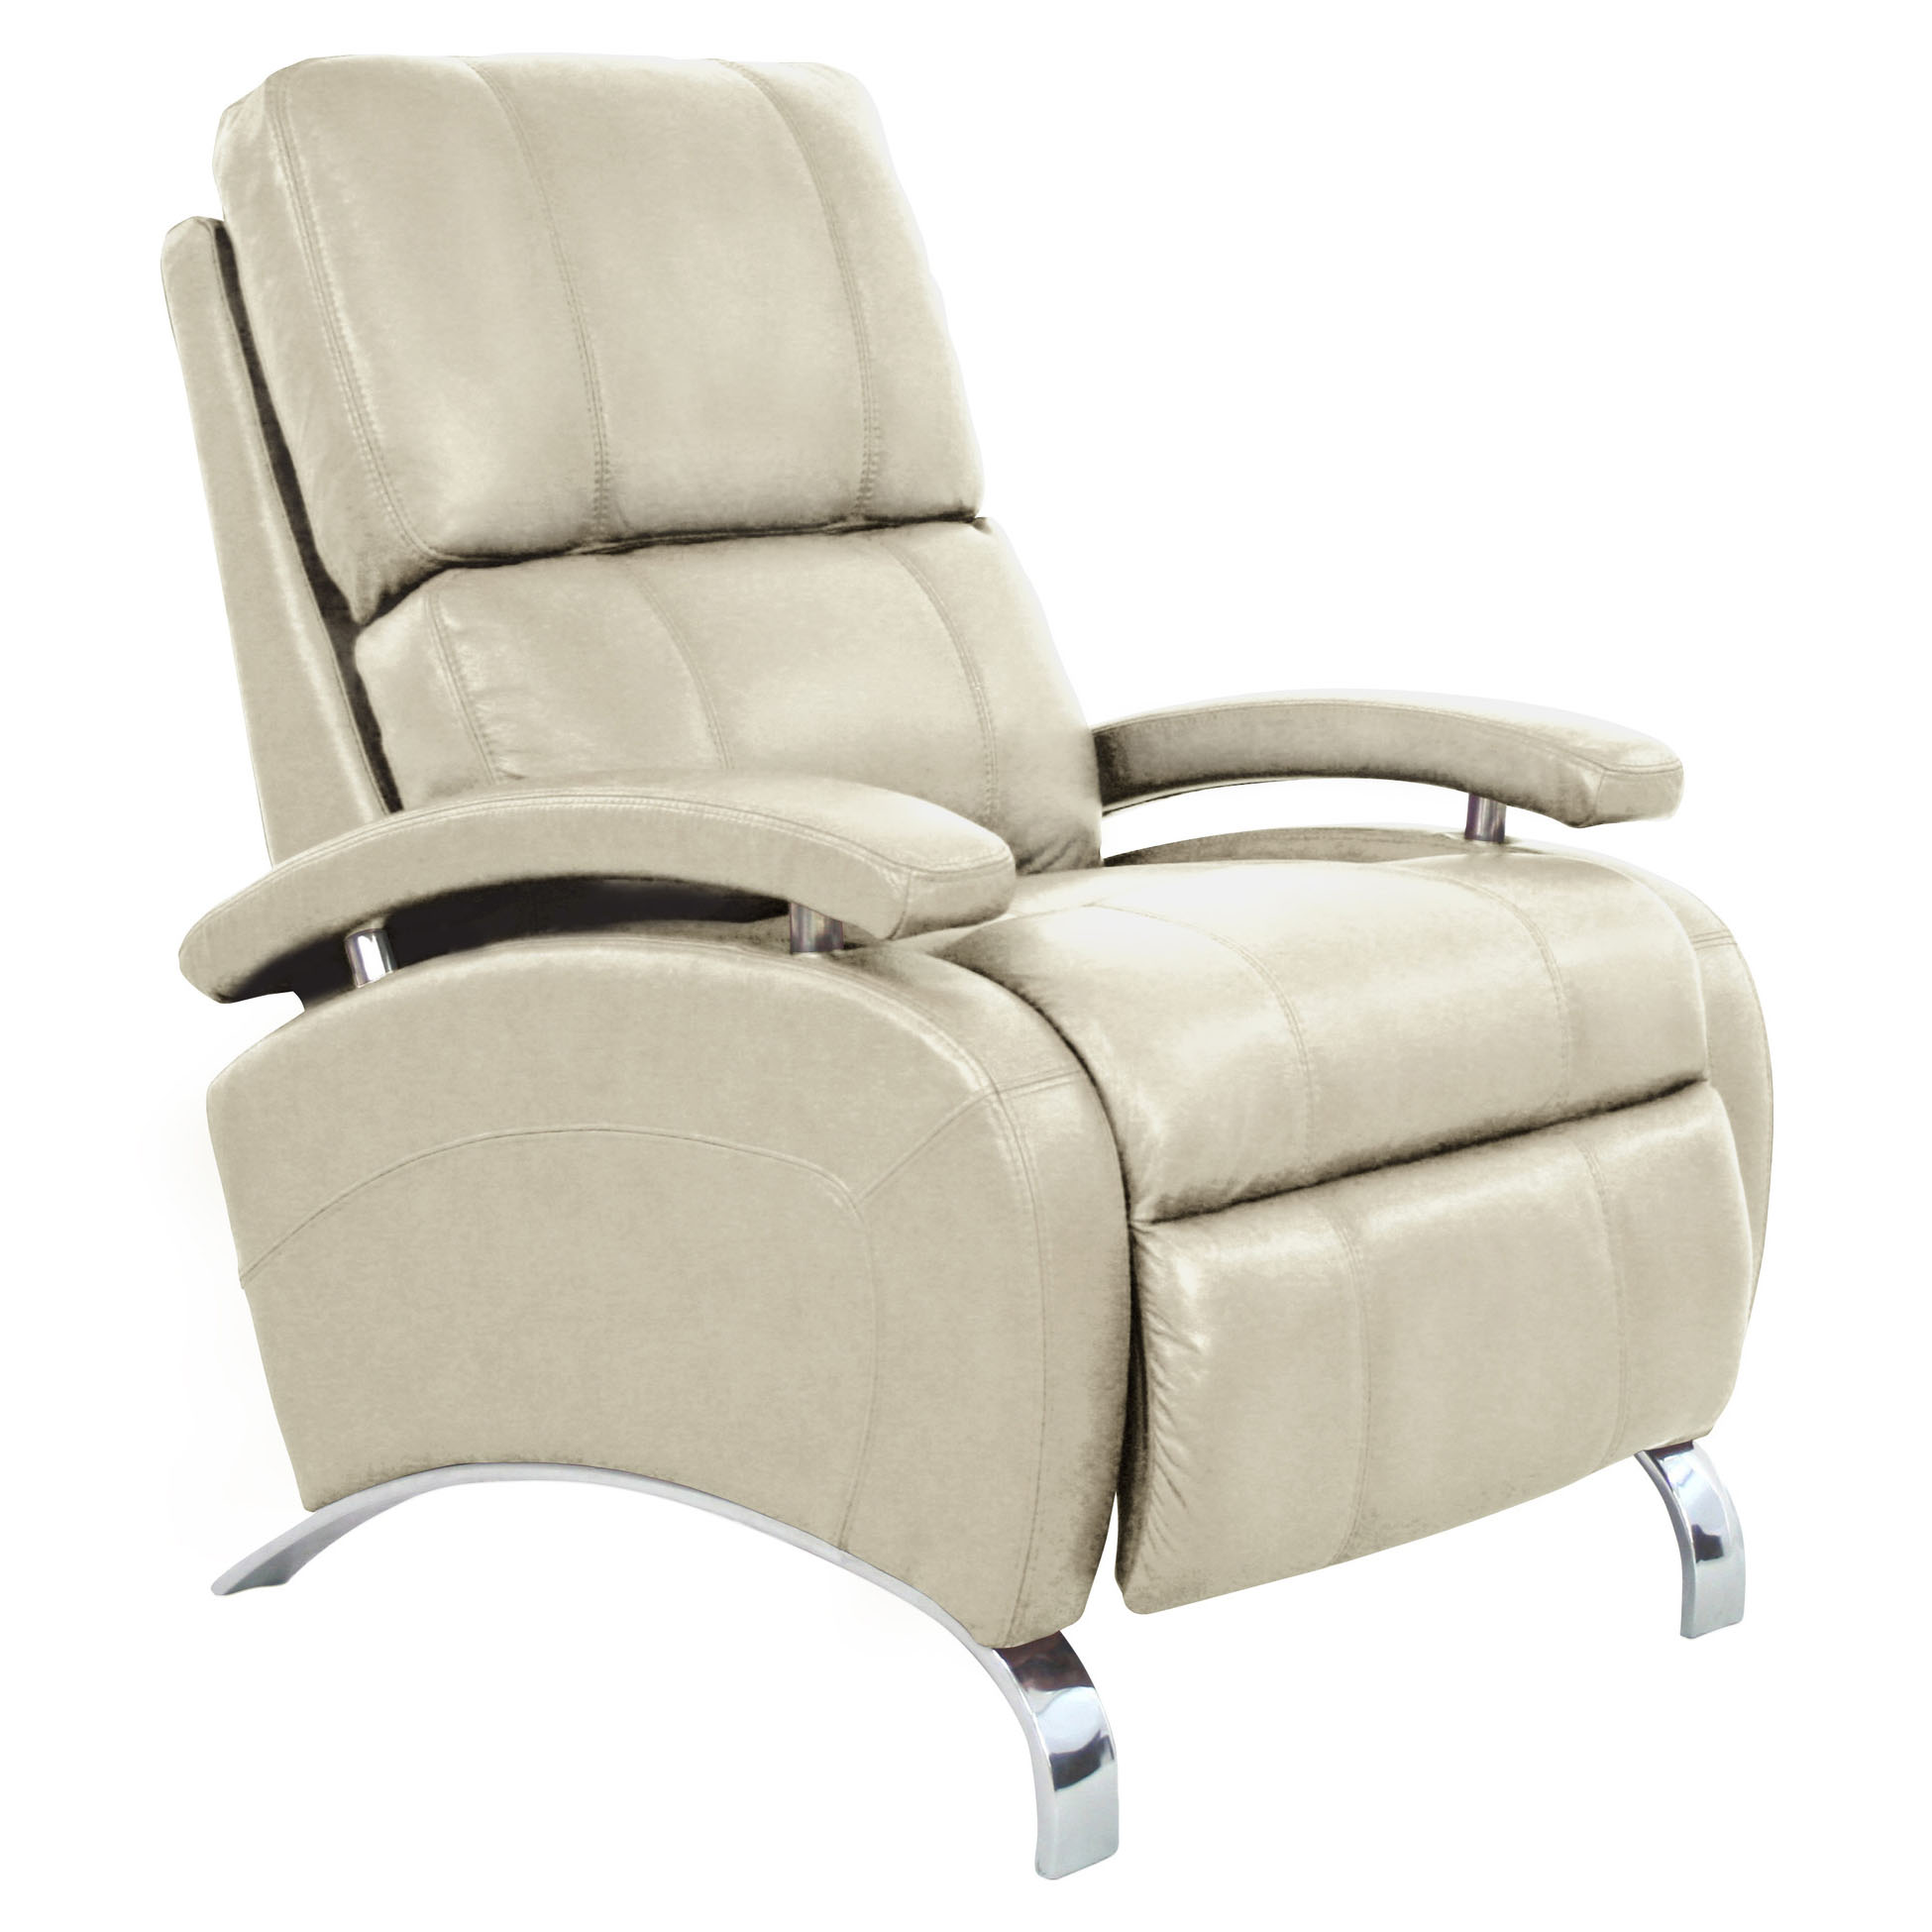 Barcalounger oracle ii recliner chair leather recliner for Chair recliner